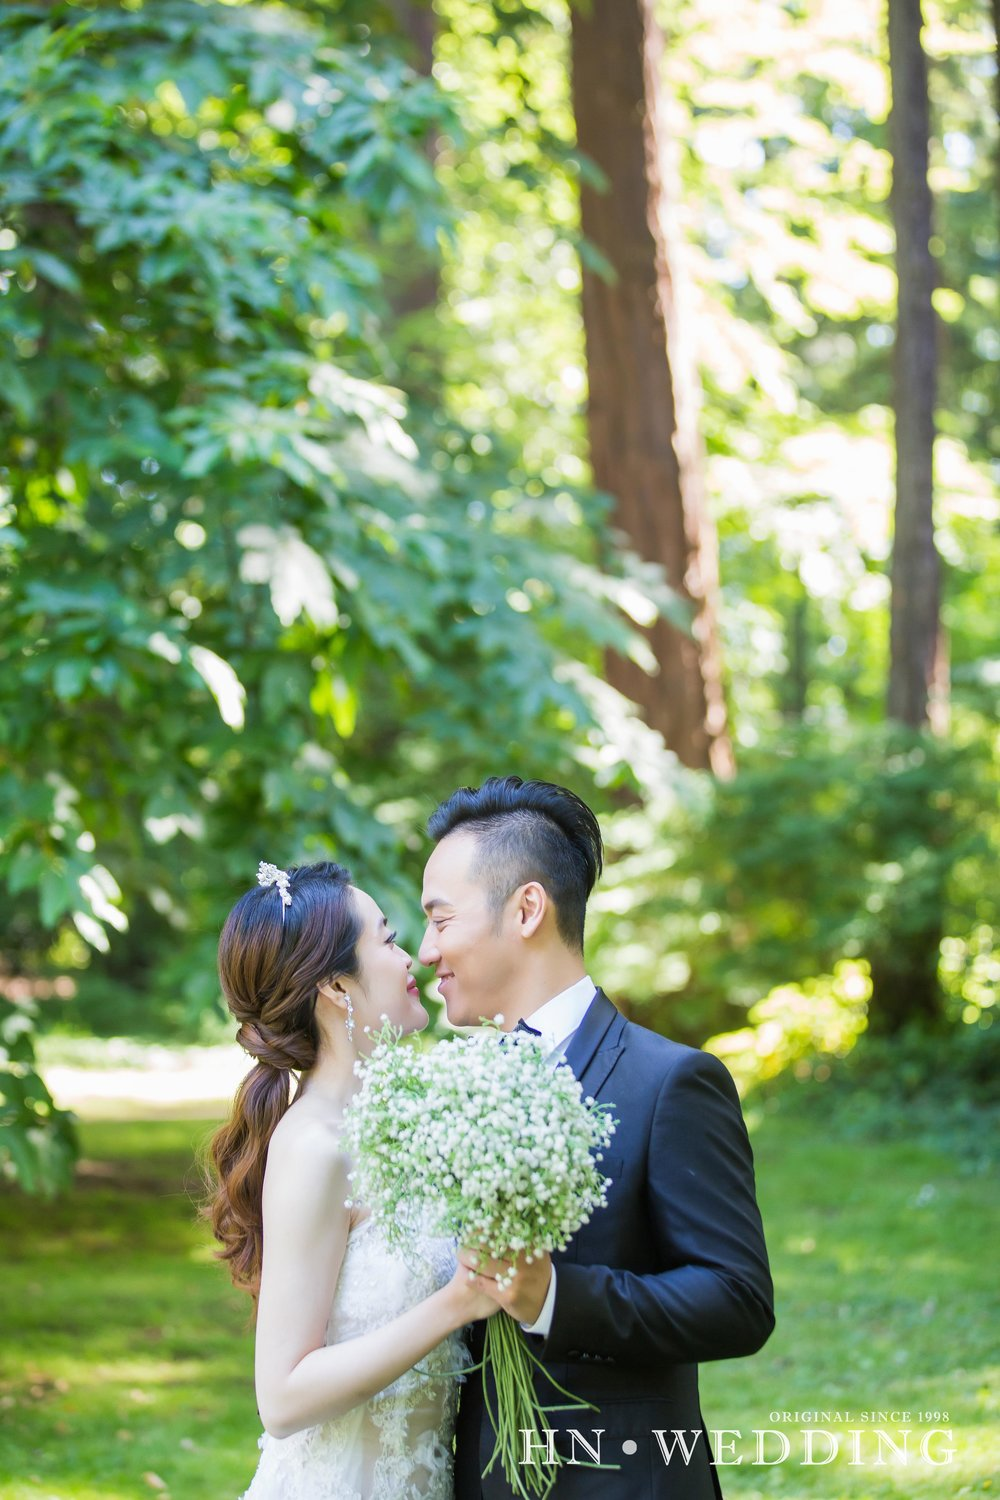 hnwedding2017rebeccaalexpreweddingday--7.jpg